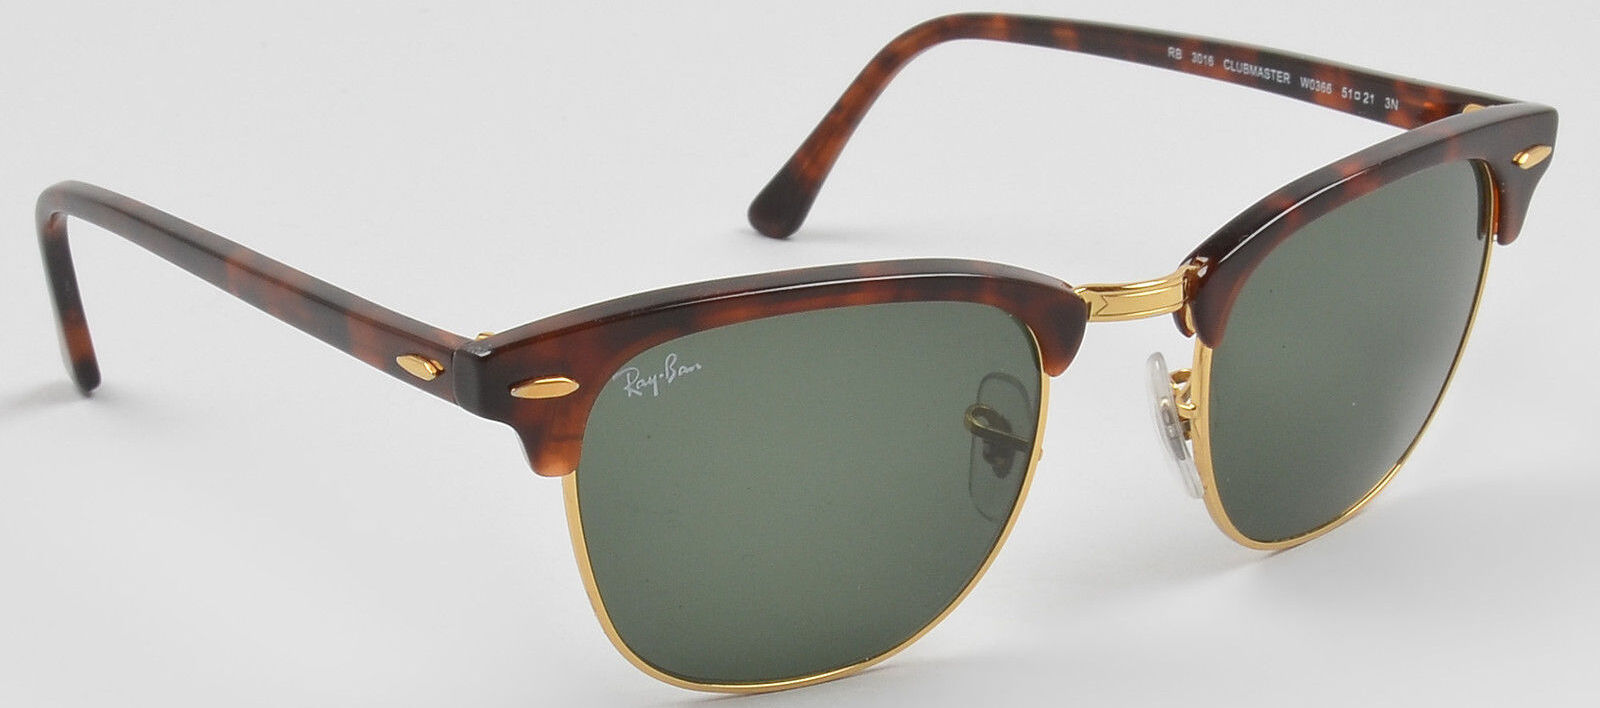 Top 10 Ray Ban Sunglasses For Men EBay